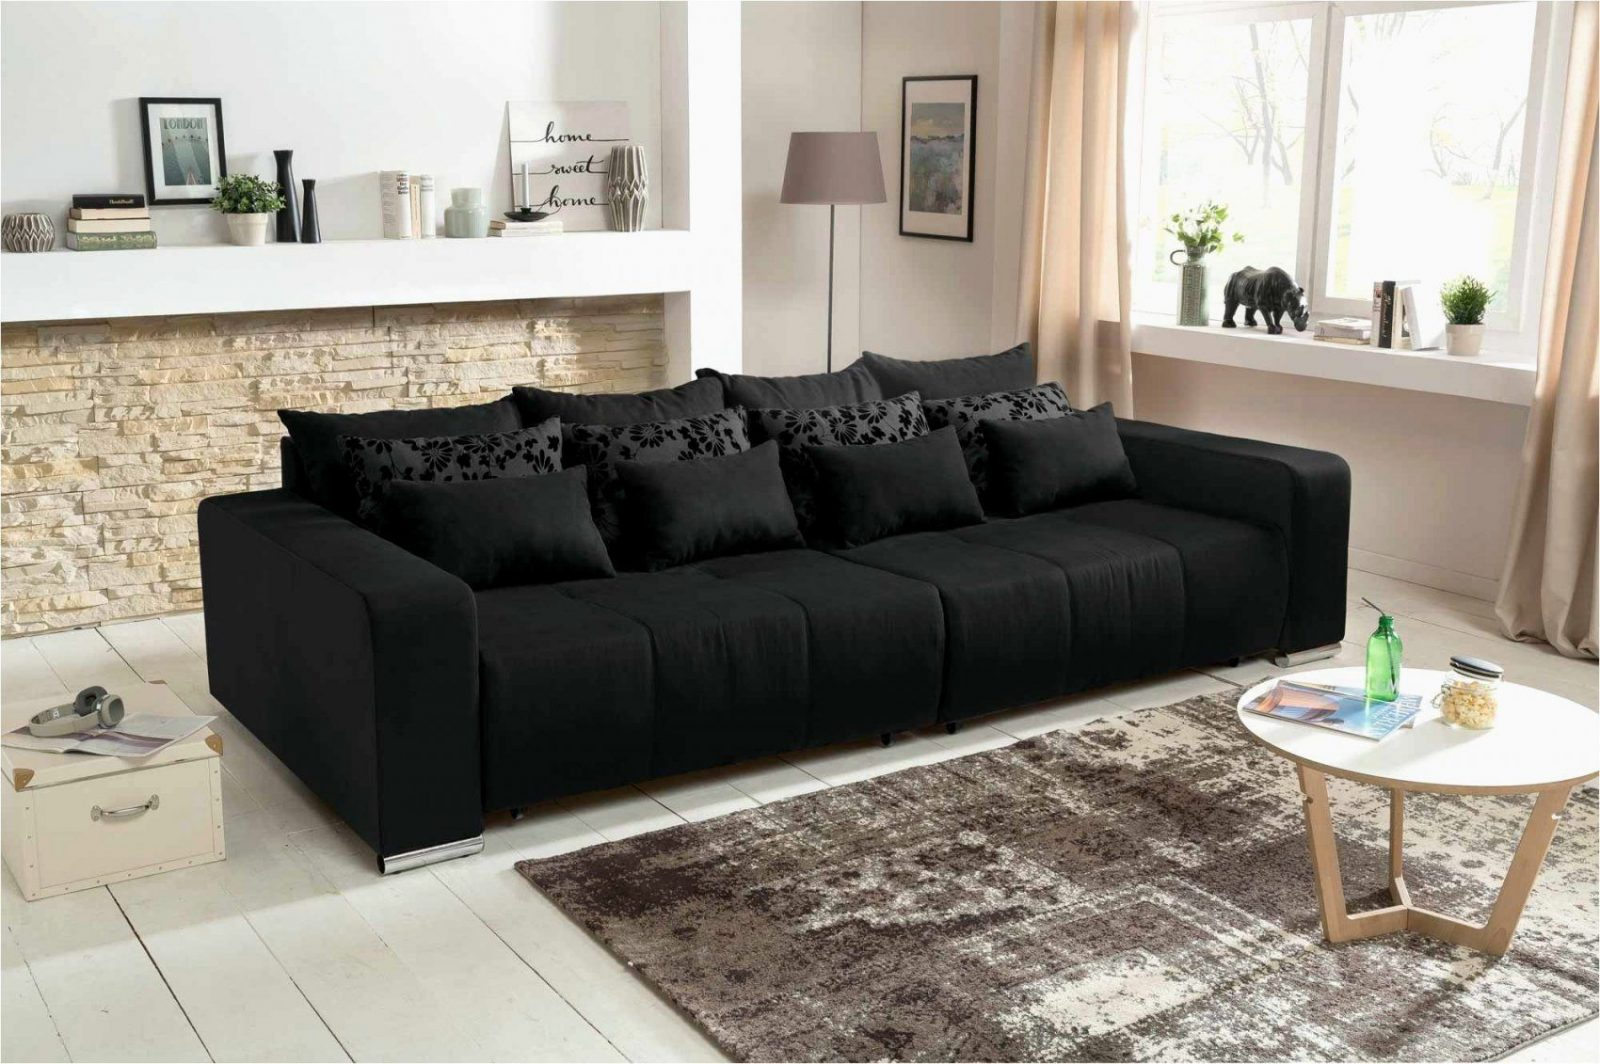 Sofa Otto Floor Cushion Sofa Ideas Otto Sofas Mit Simple Bigsofa von Otto Couch Mit Schlaffunktion Bild